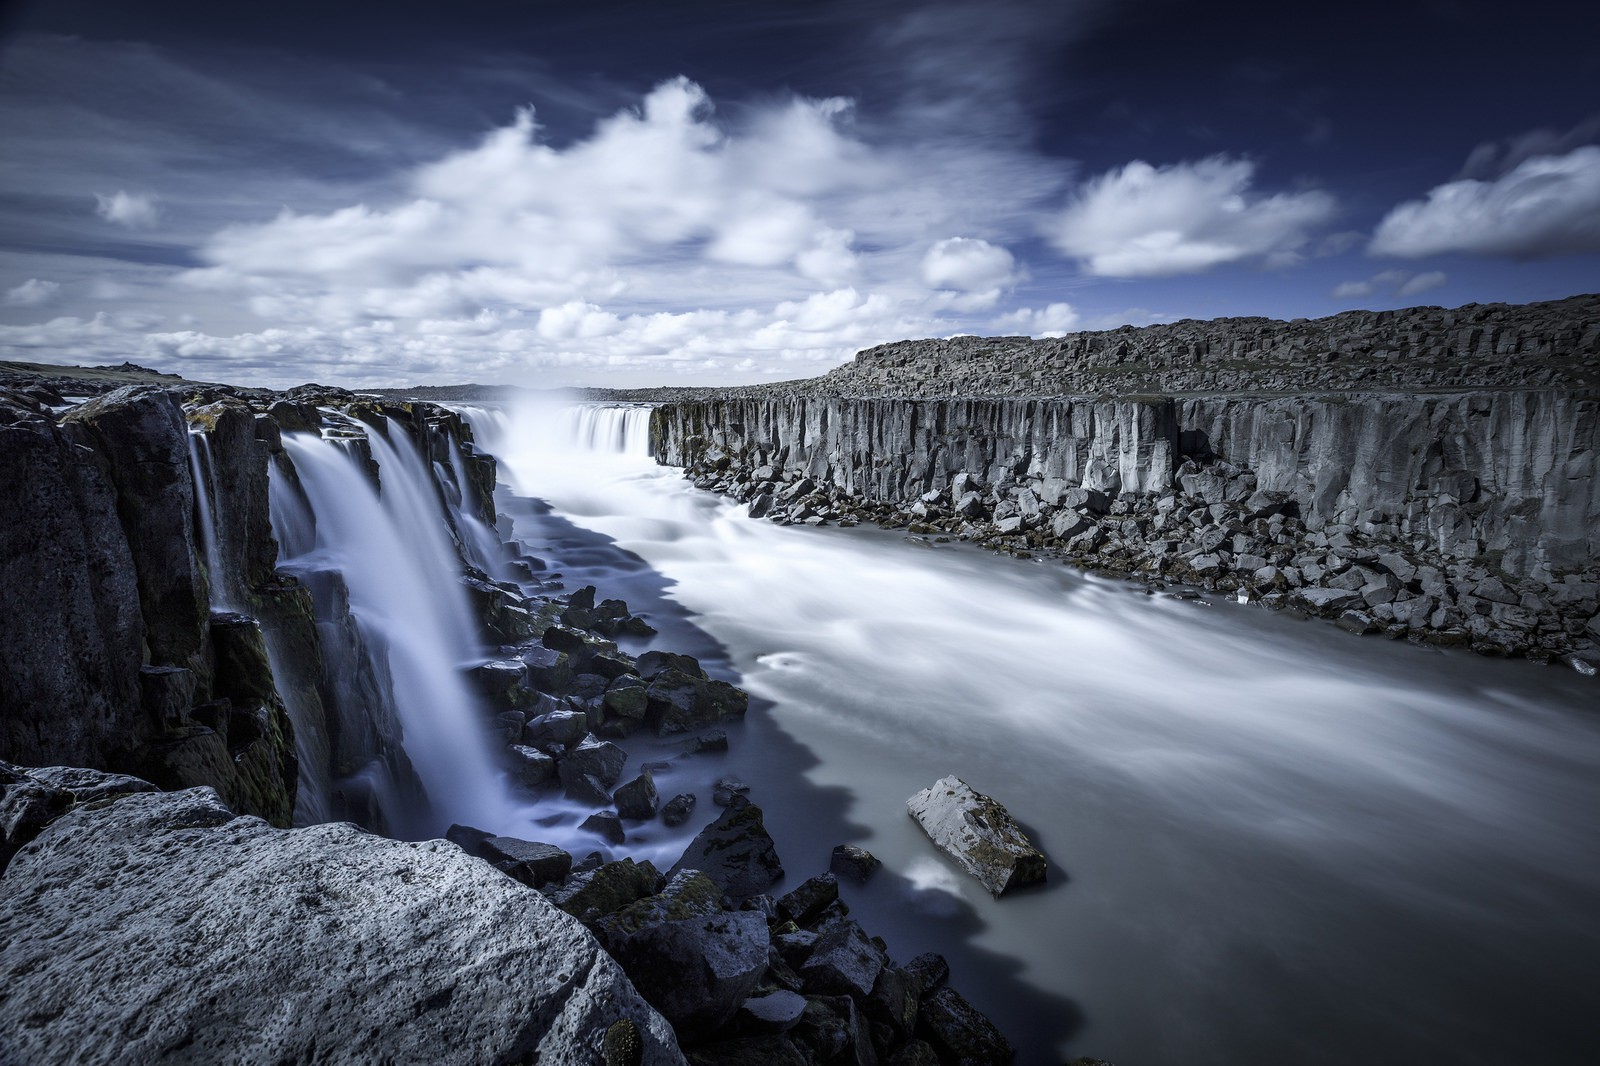 The Fall Movie Wallpaper Photography Nature Landscape Mountains Water Fall